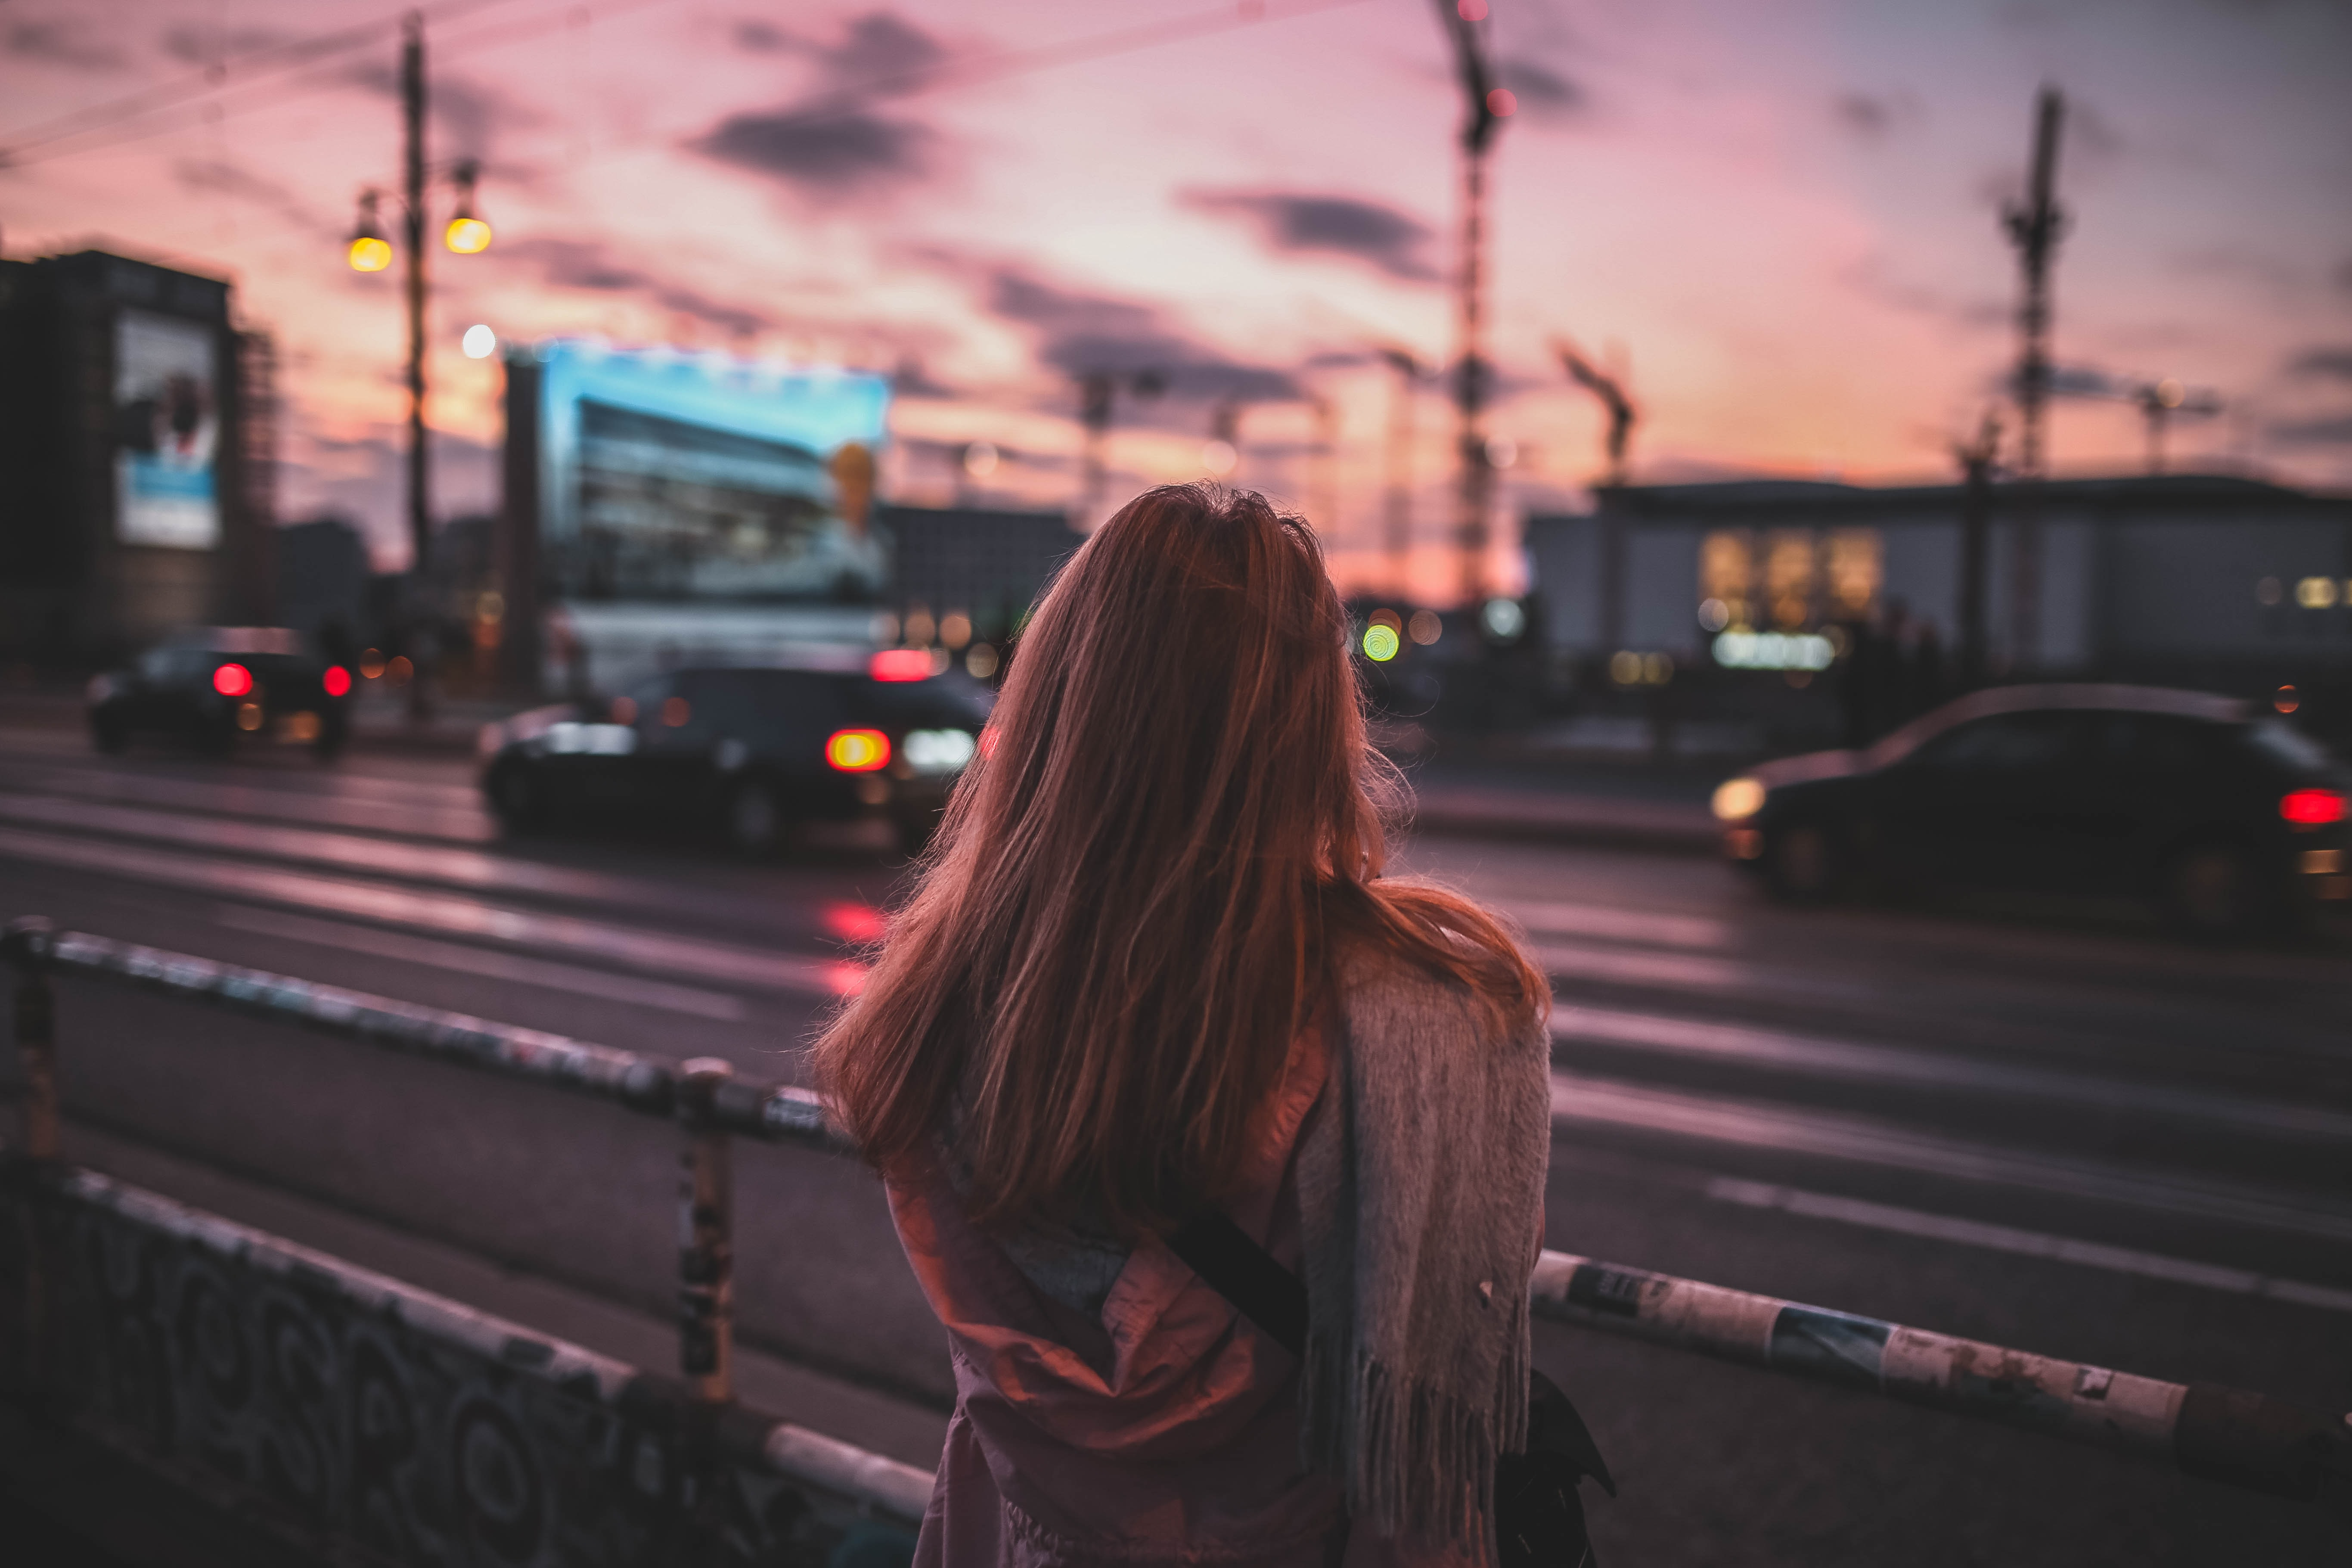 Standing behind a woman alone near a busy street railing